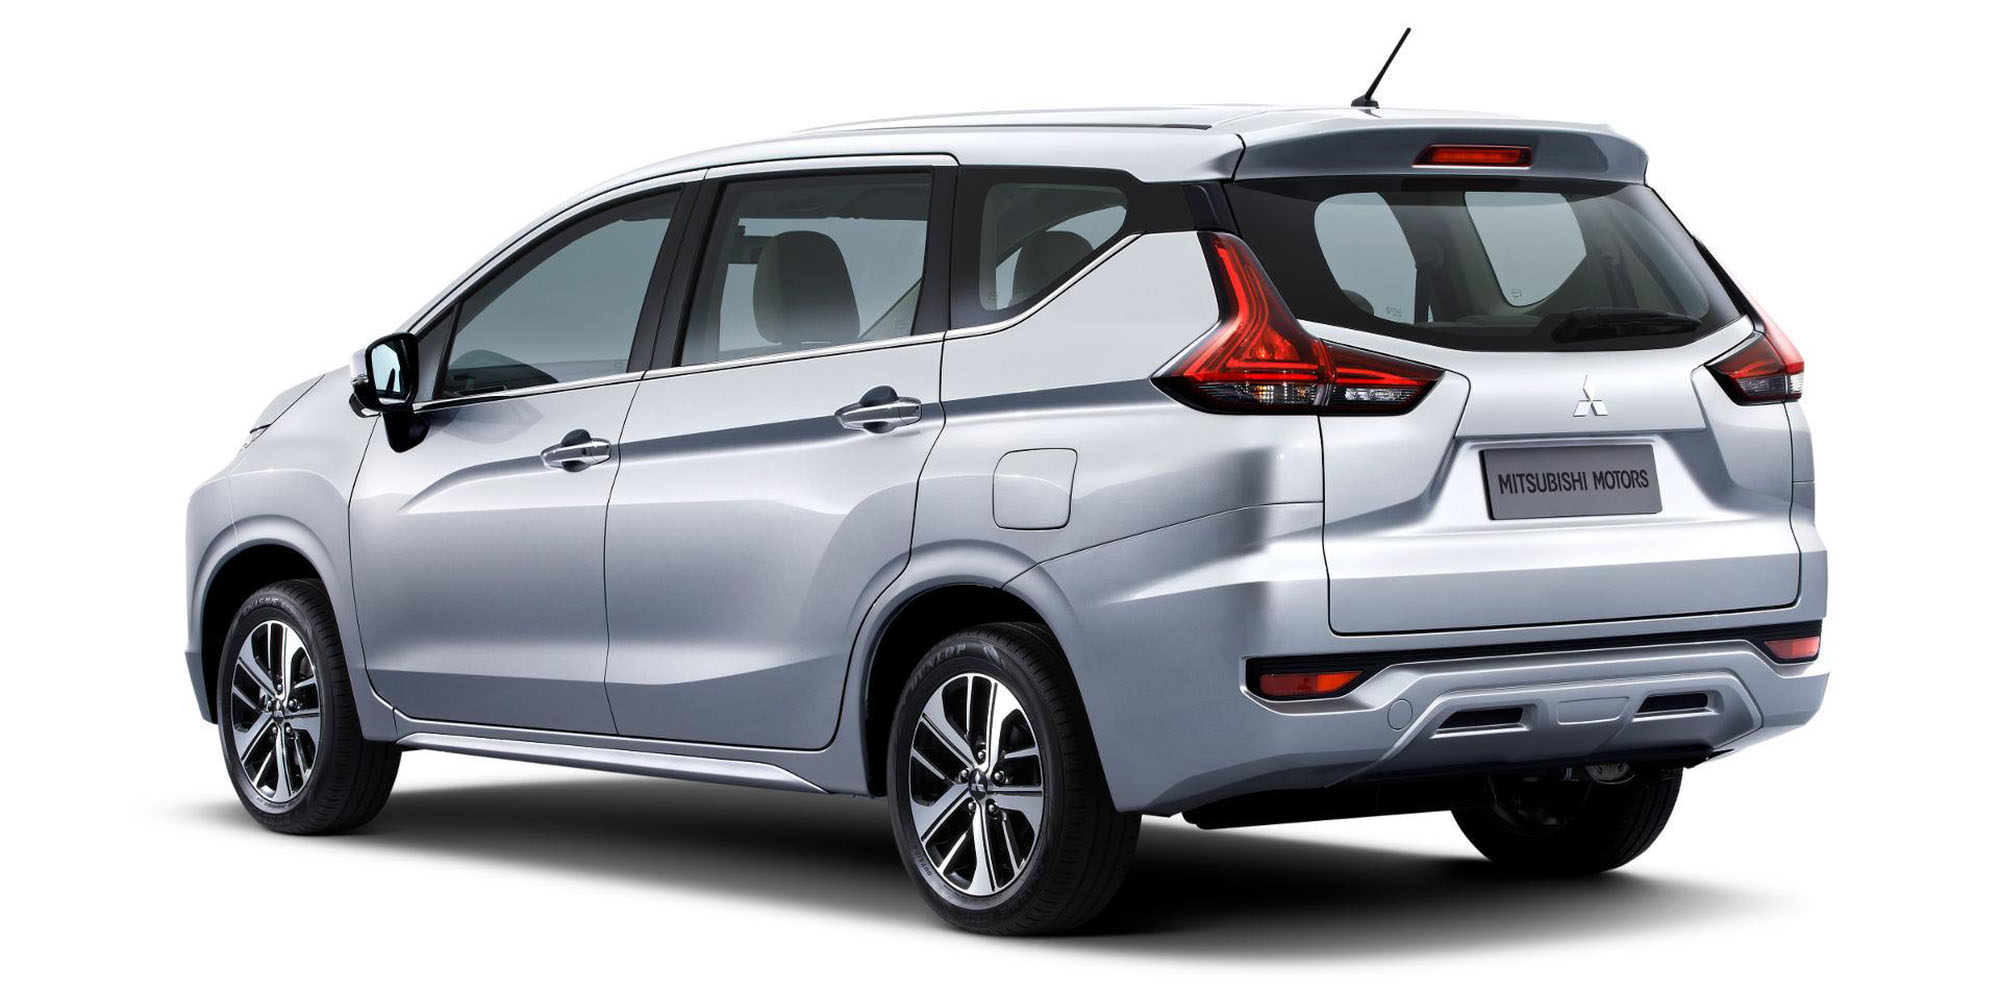 2018 Mitsubishi Expander New Car Release Date And Review